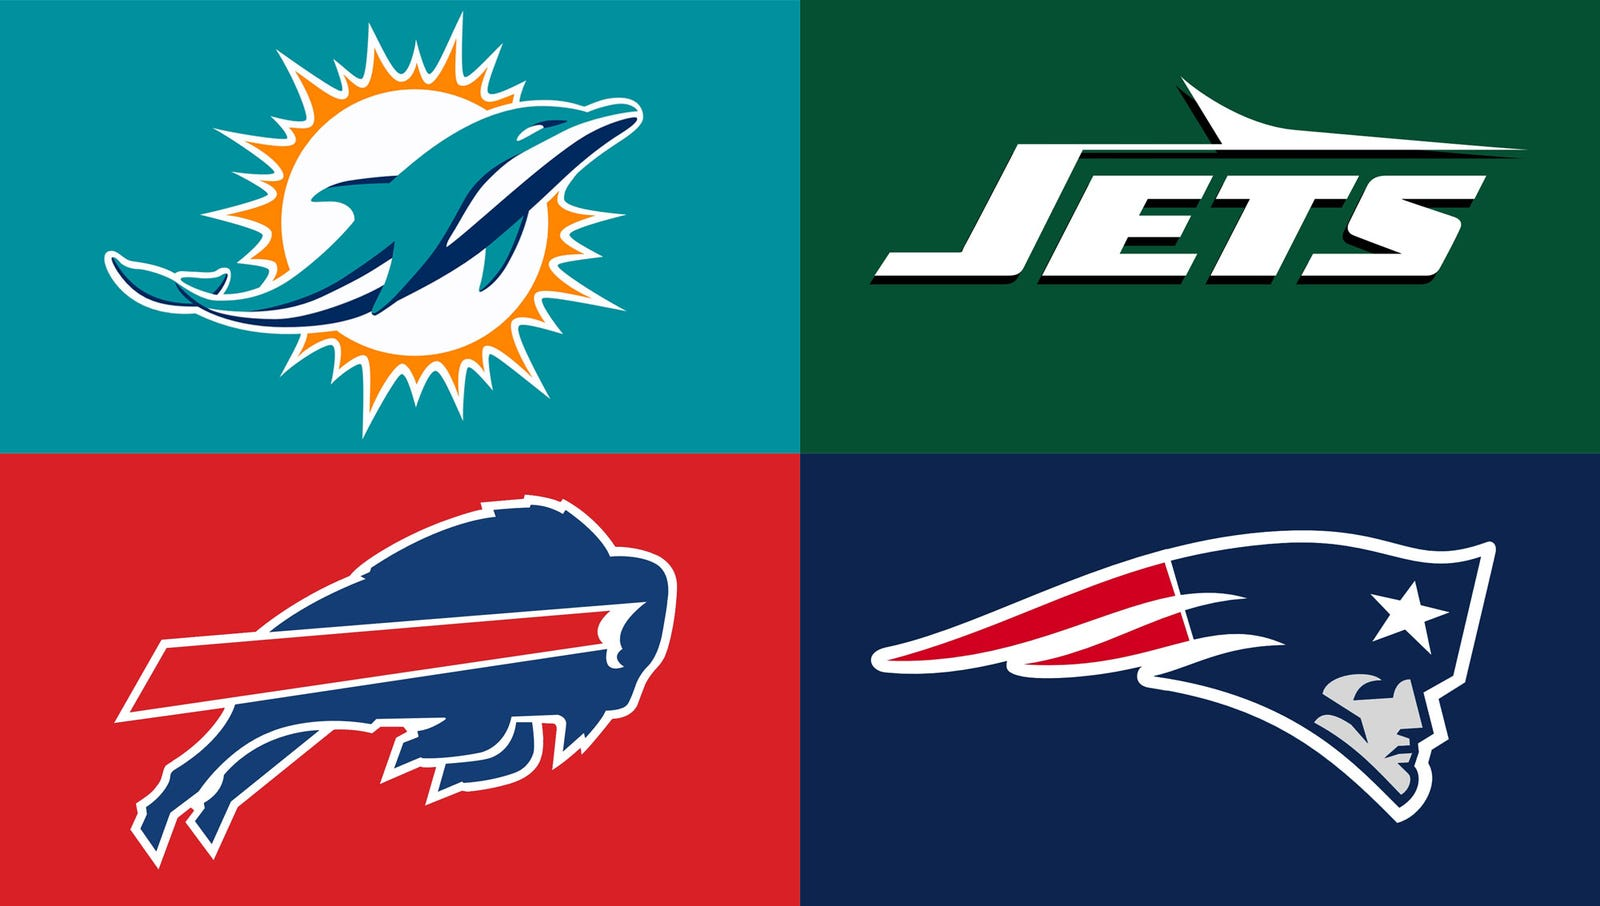 With the 2014 NFL season kicking off this week, Onion Sports has in-depth analysis on each team in the AFC East.